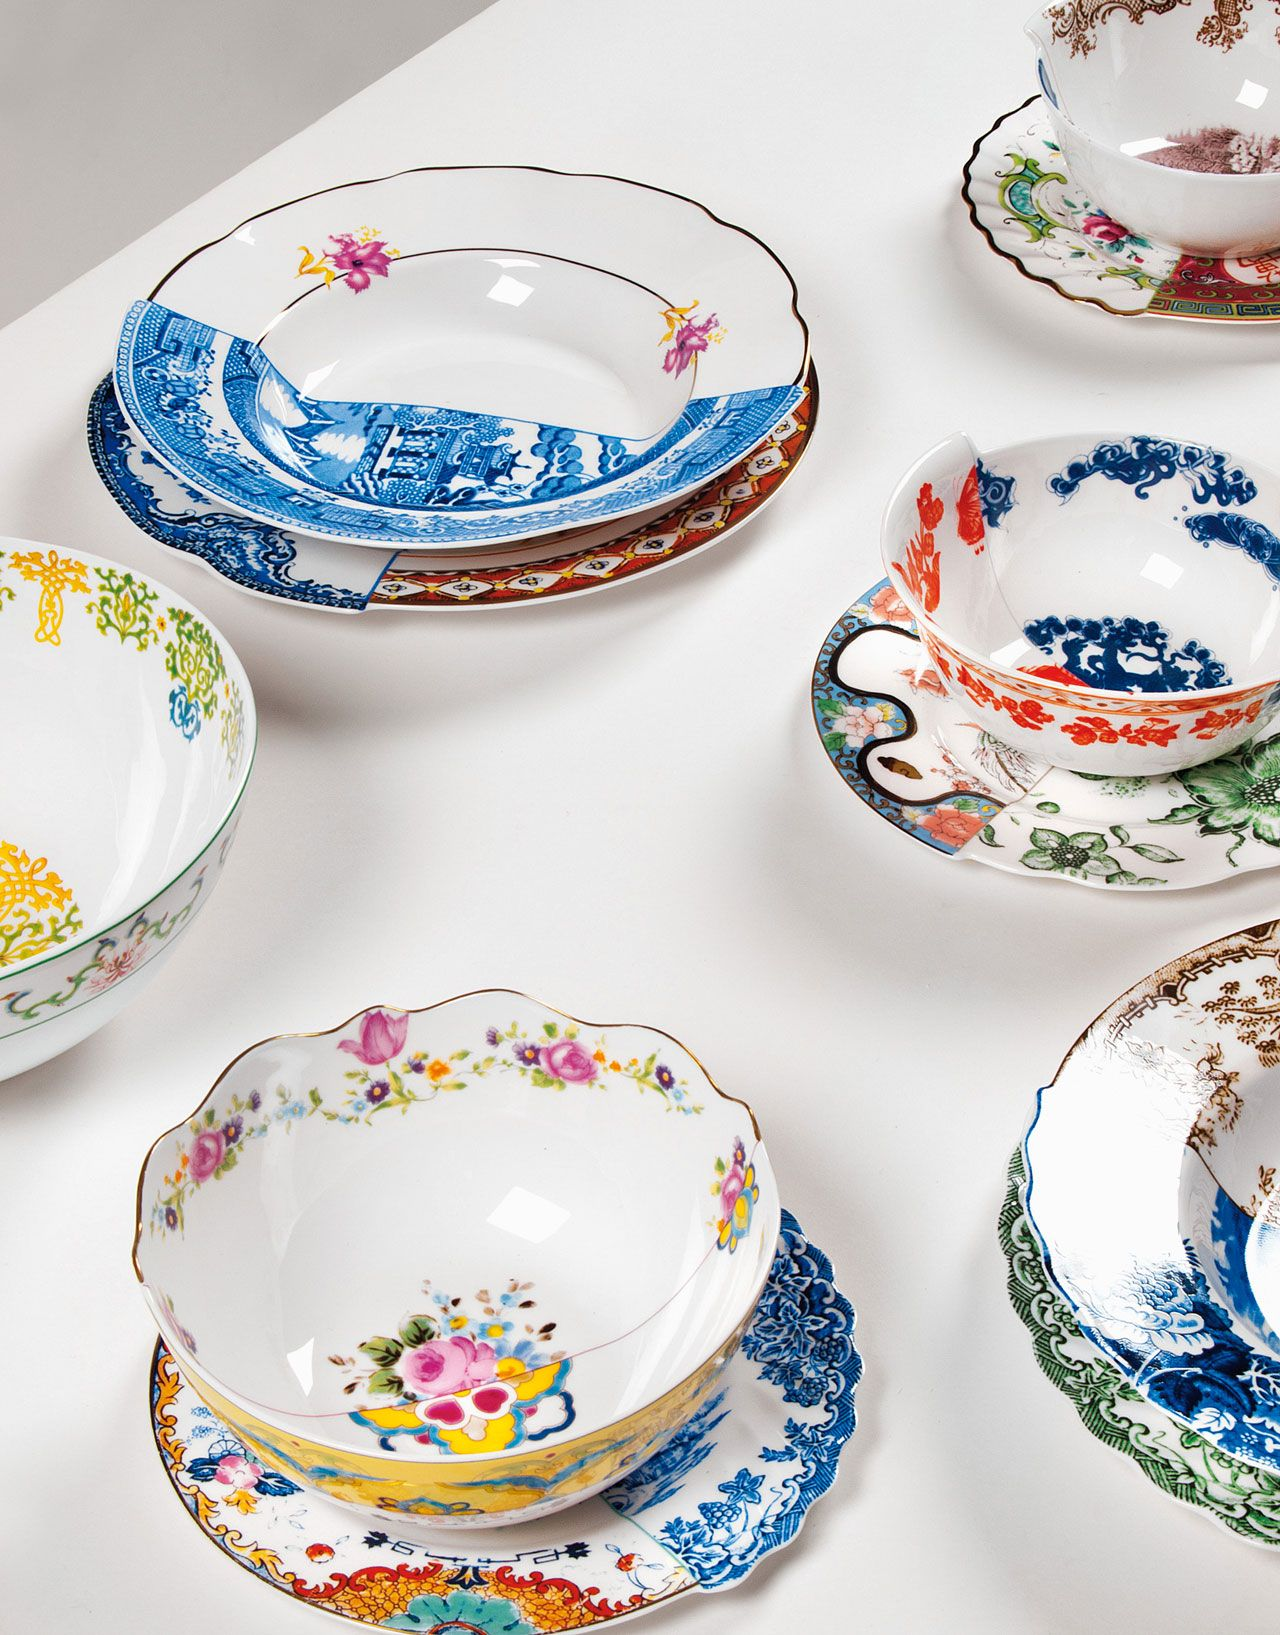 HYBRID u2013 Handcrafted dinnerware by CTRLZAK for SELETTI  sc 1 st  Pinterest & HYBRID u2013 Handcrafted dinnerware by CTRLZAK for SELETTI | Design ...